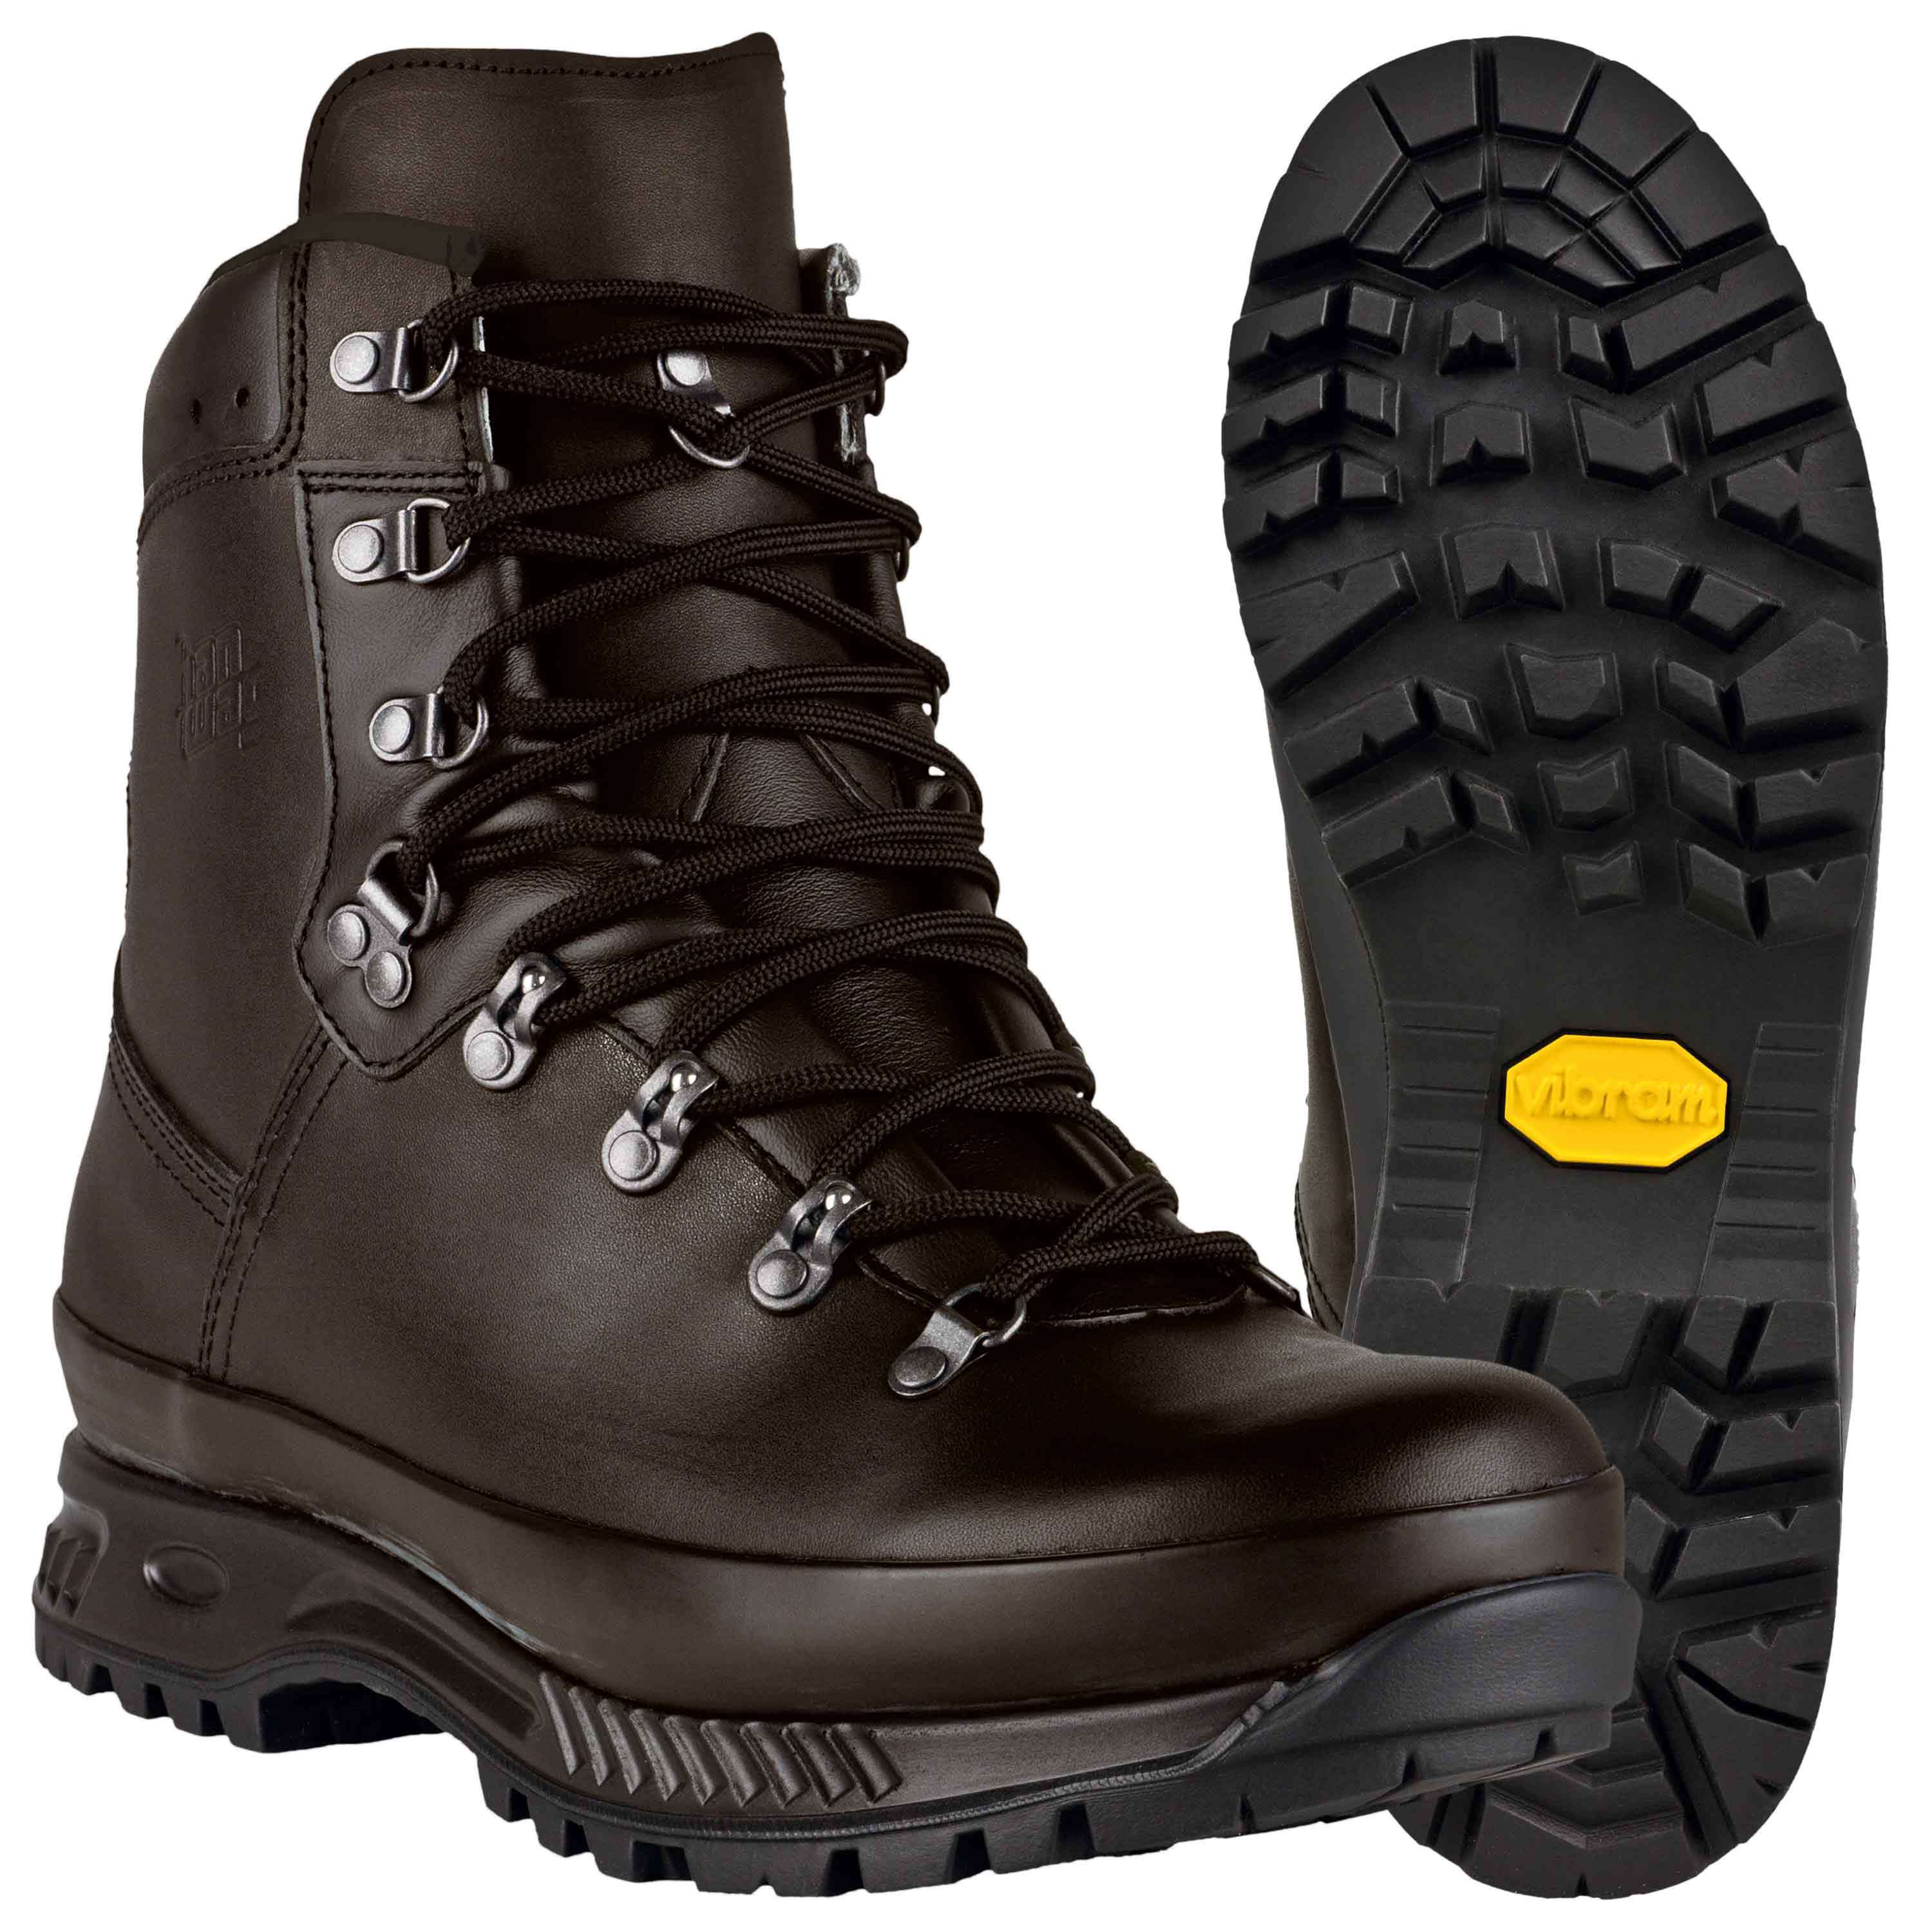 Hanwag Stiefel Special Force LX hydro brown